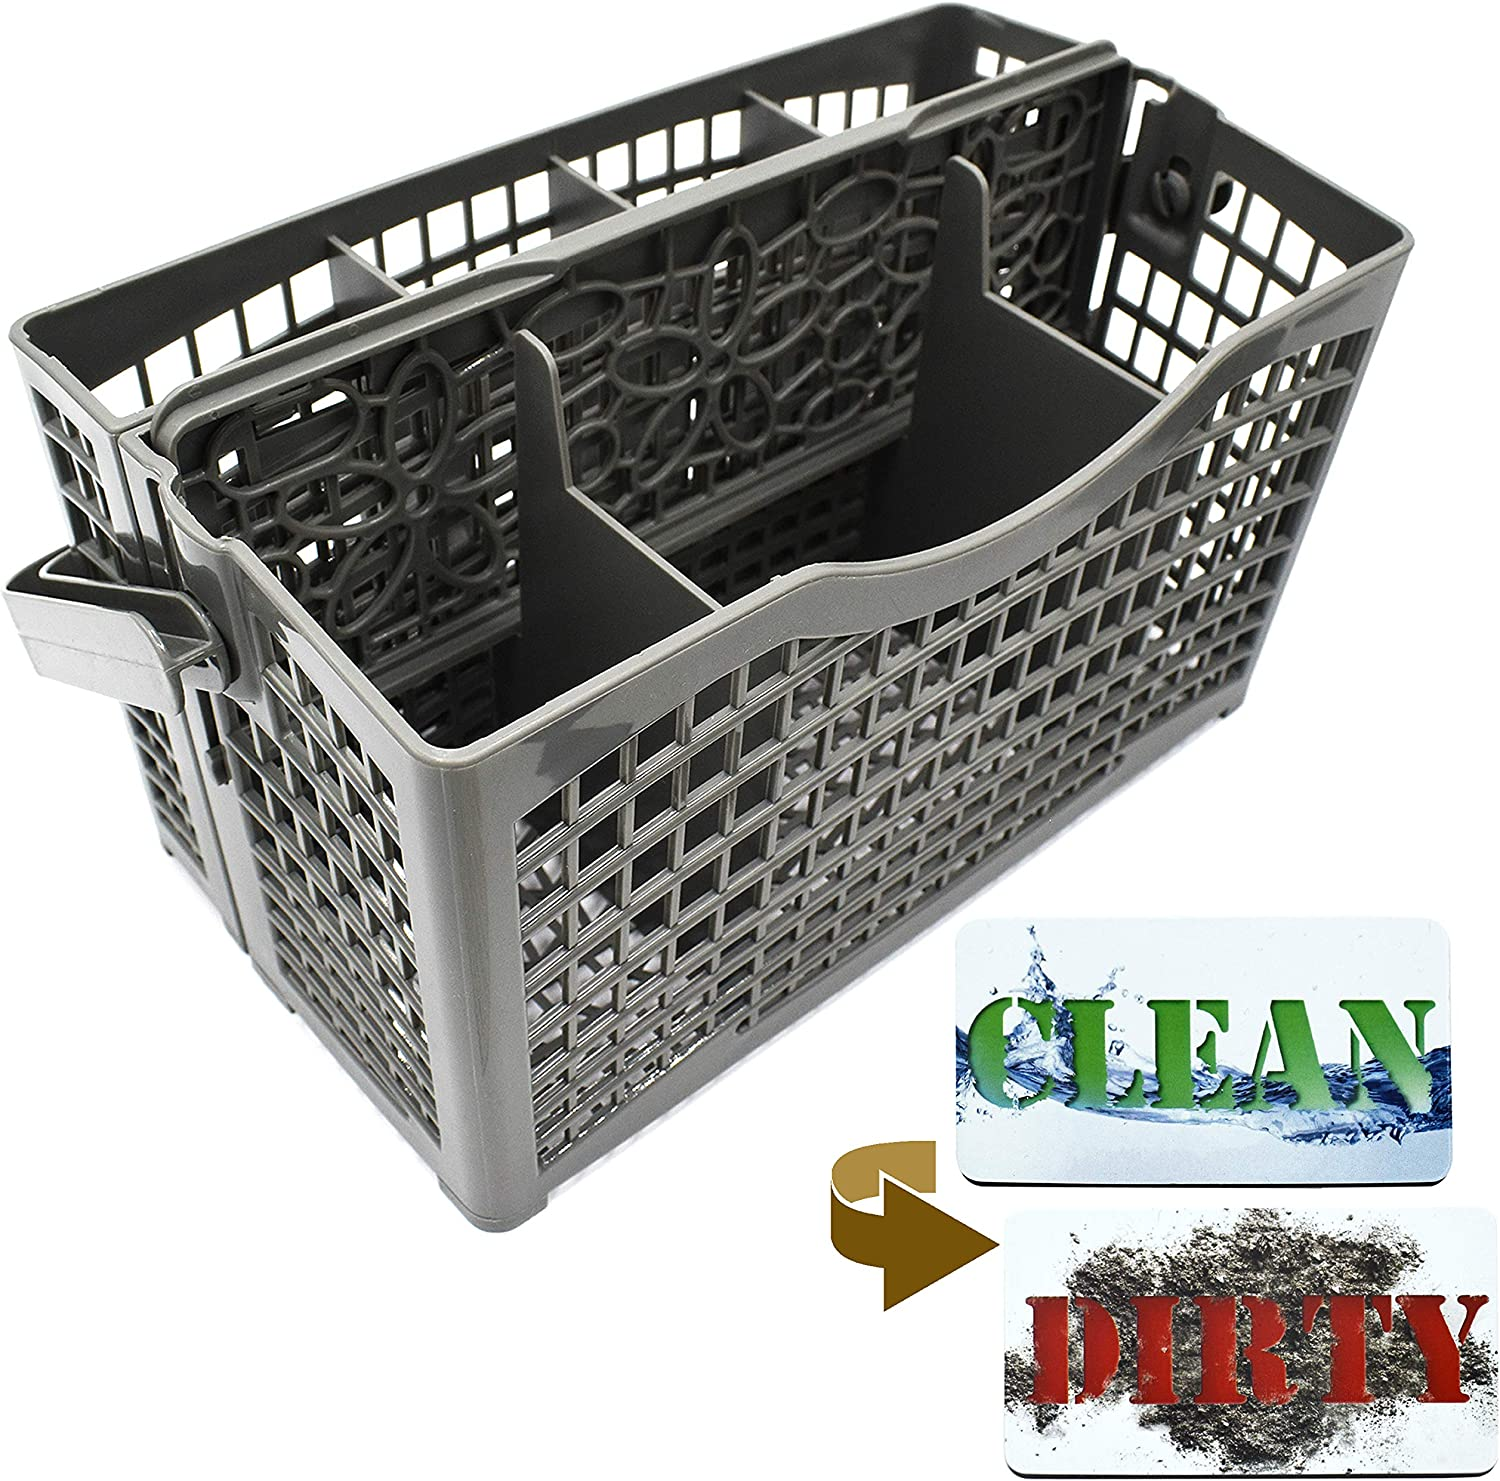 Dishwasher Silverware Max 74% OFF Basket Universal - Clean Excellent Sign Magnet Dirty